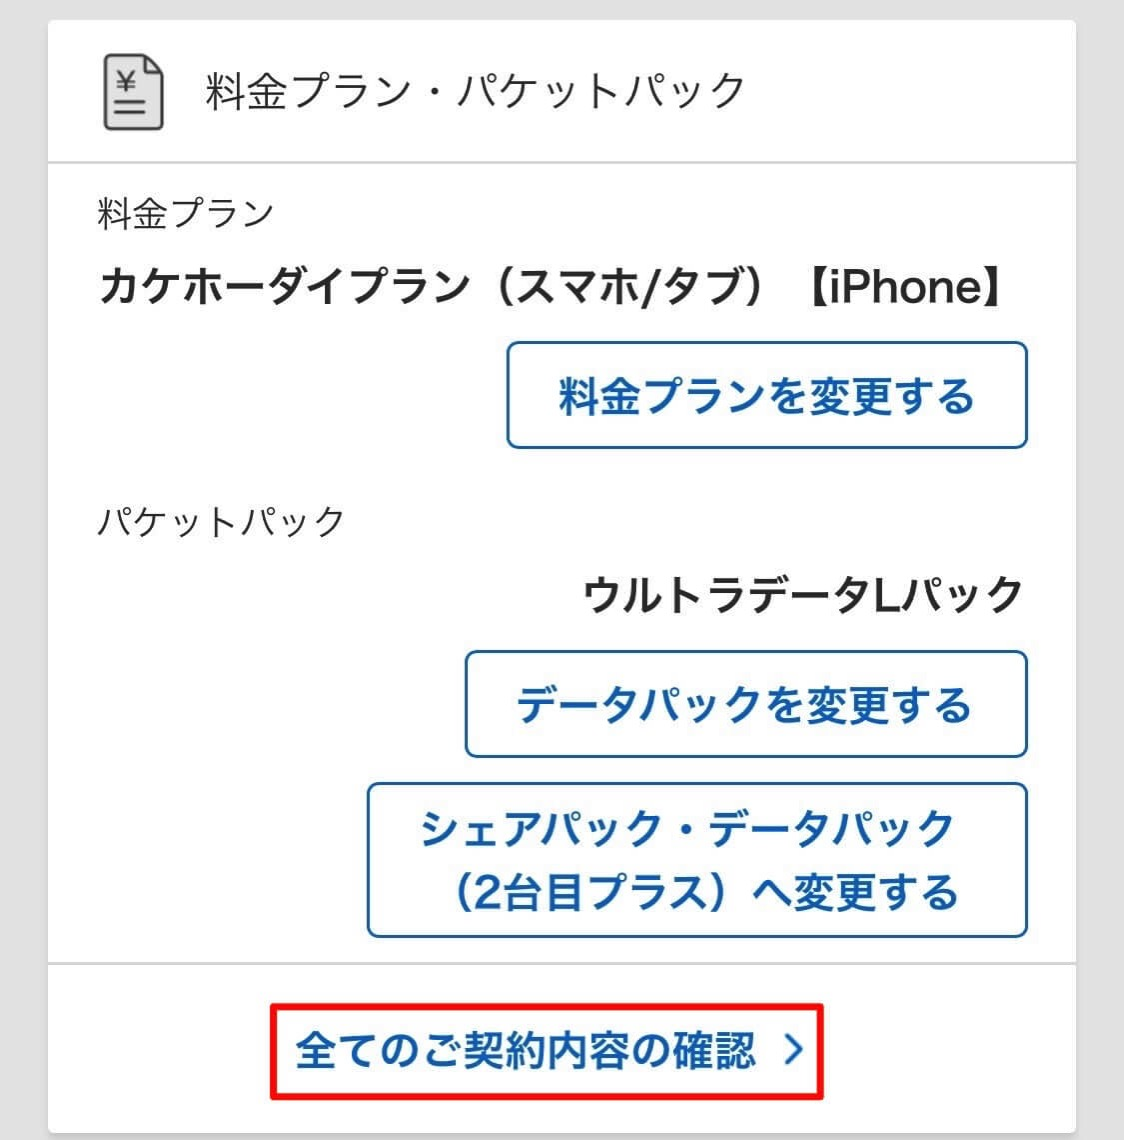 The docomo one number service cancellation of a contract 2